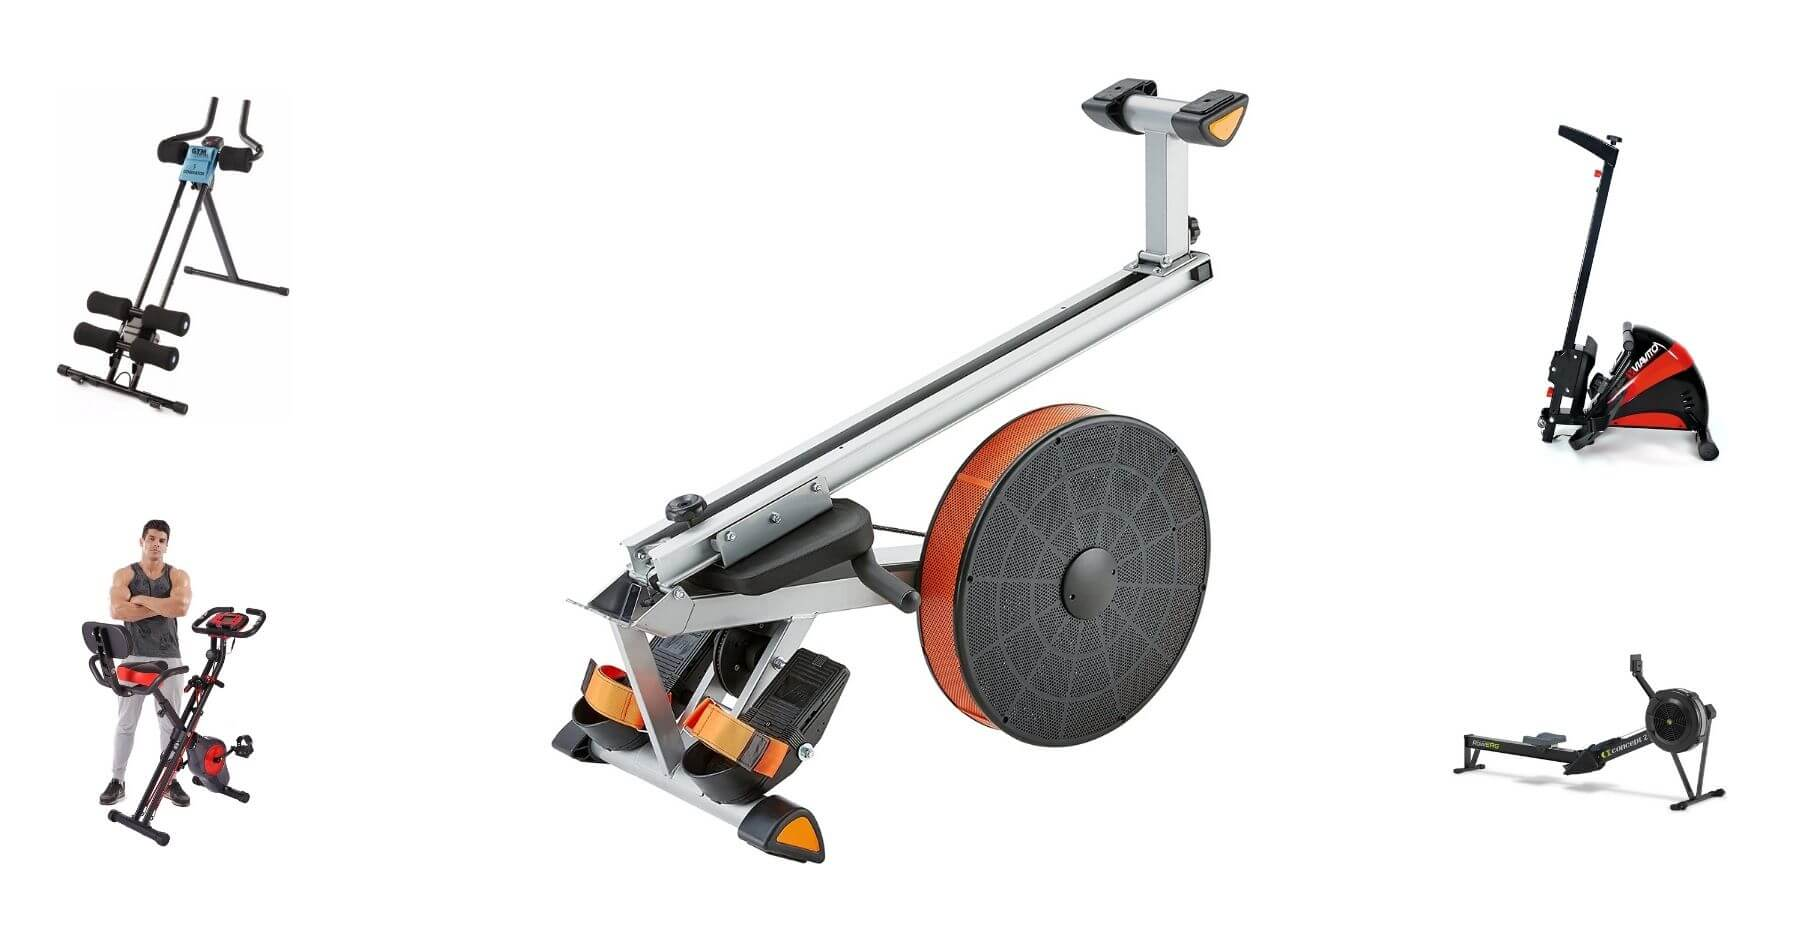 Top 8 Best Affordable Rowing Machine in UK